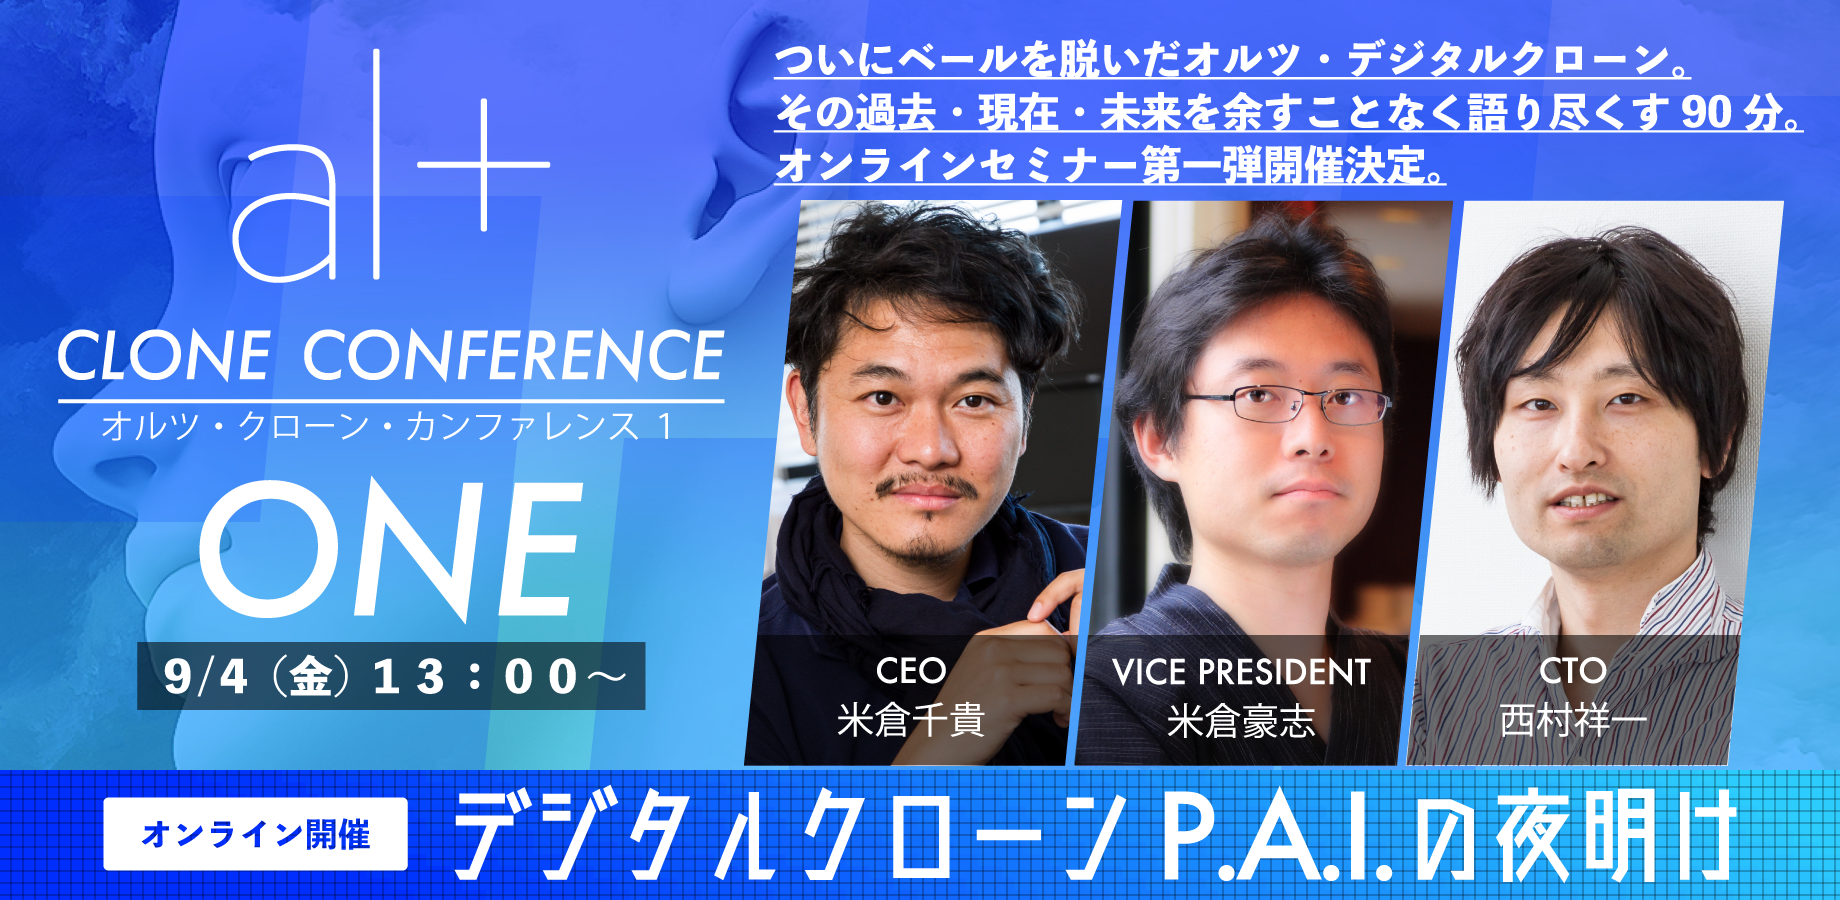 Alt Clone Conference ONE